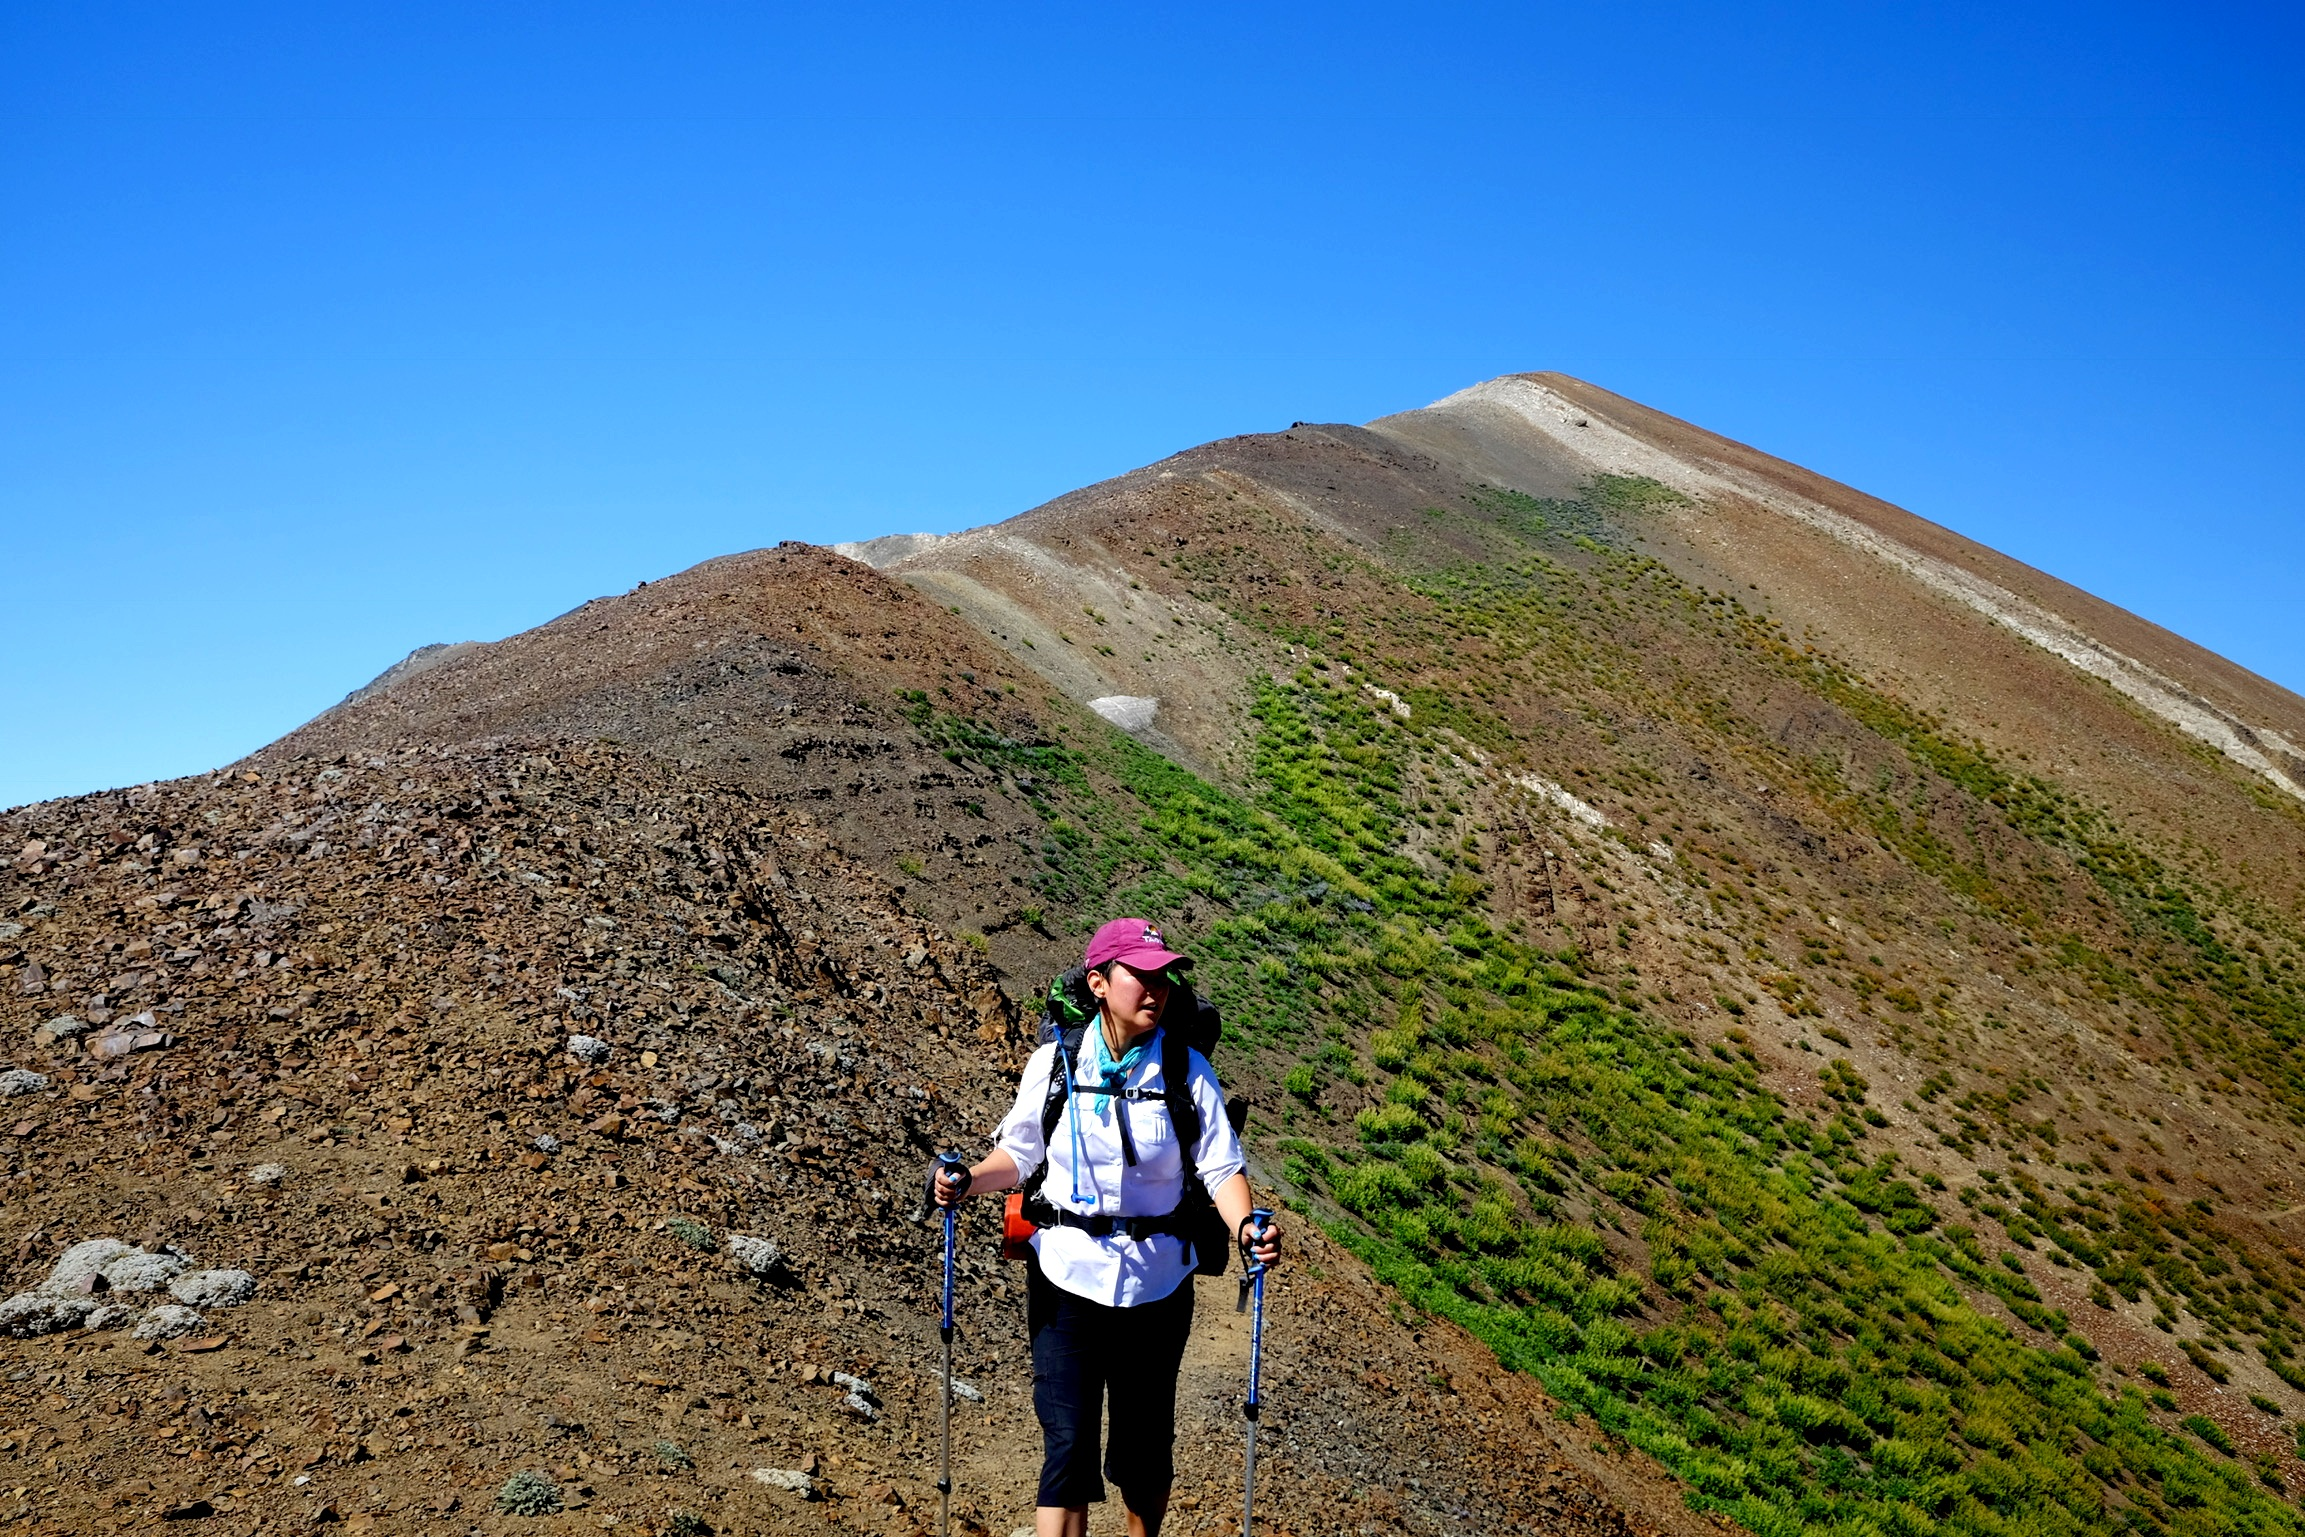 Make that Gnarly Hike Yours - by a Weekend Warrior Outdoorswoman